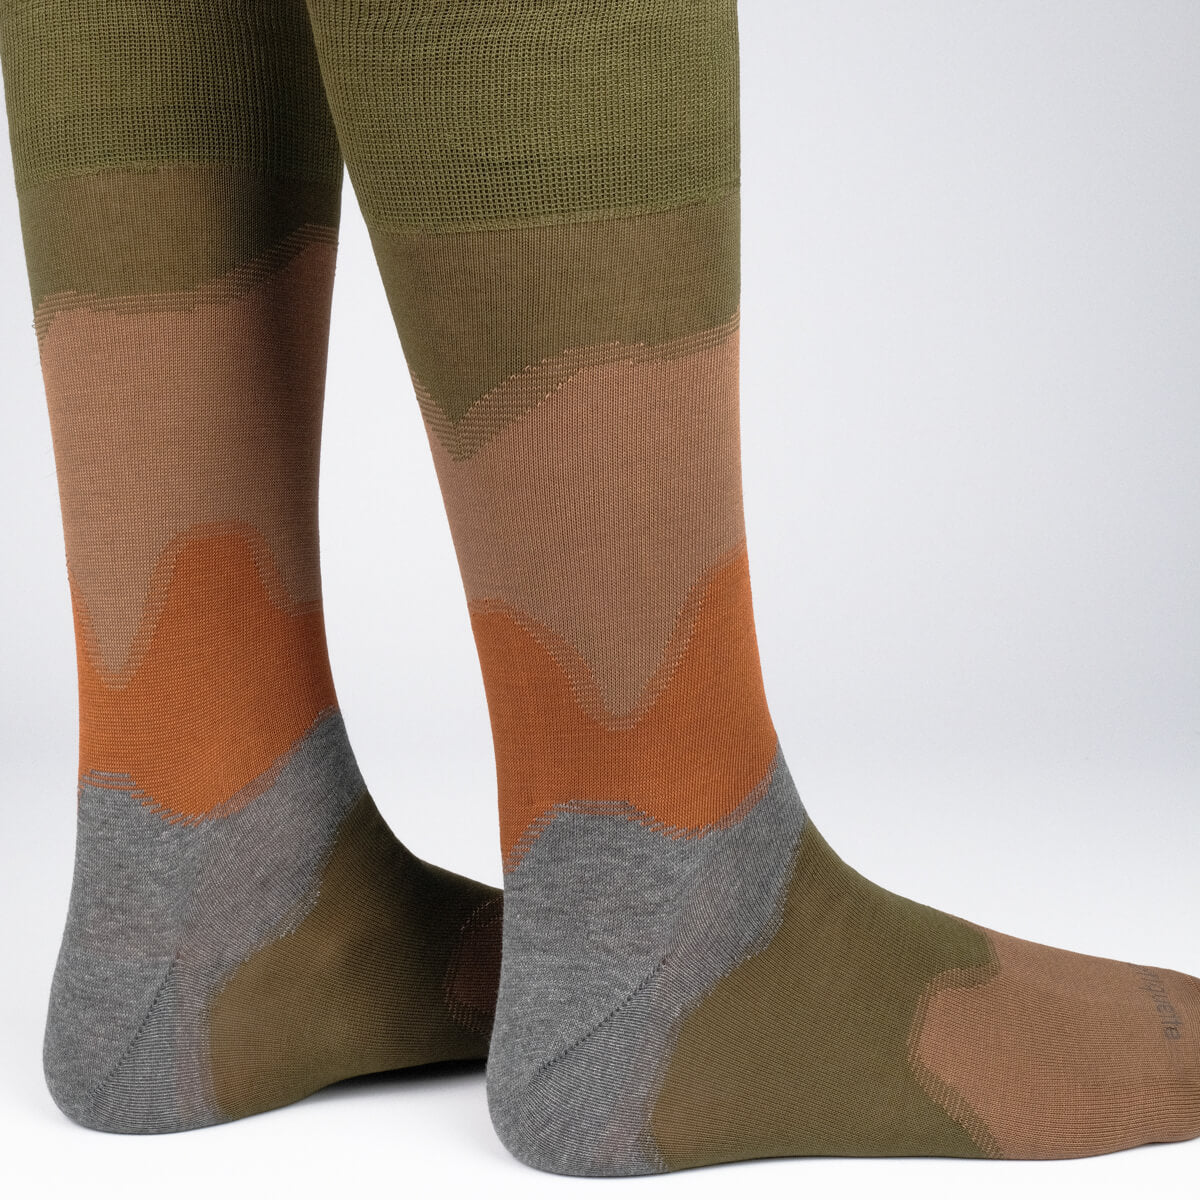 Mens Socks - Idyllic Men's Socks - Green⎪Etiquette Clothiers